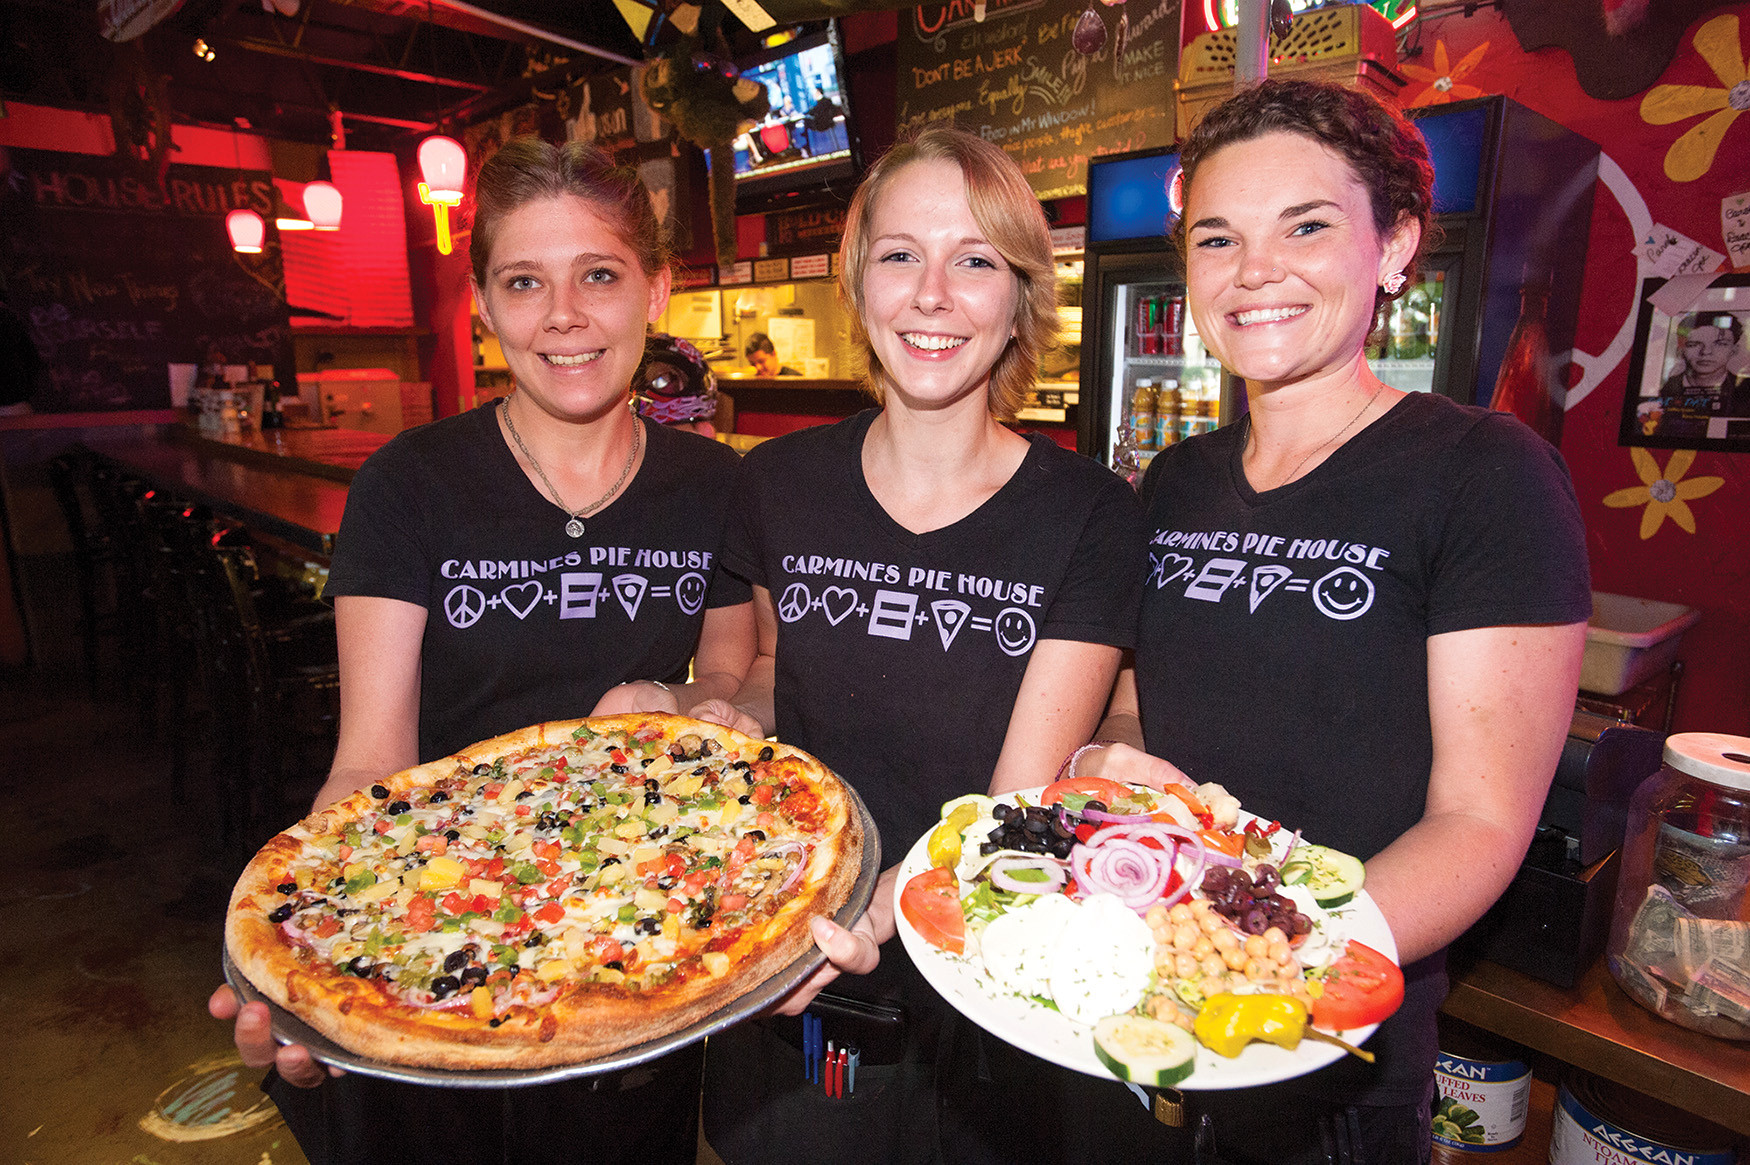 Isis Gaugler, LaRissa Bruce and Sarah Brown of Carmine's Pie House present their signature Train Wreck pizza and Carmine's salad in Riverside.